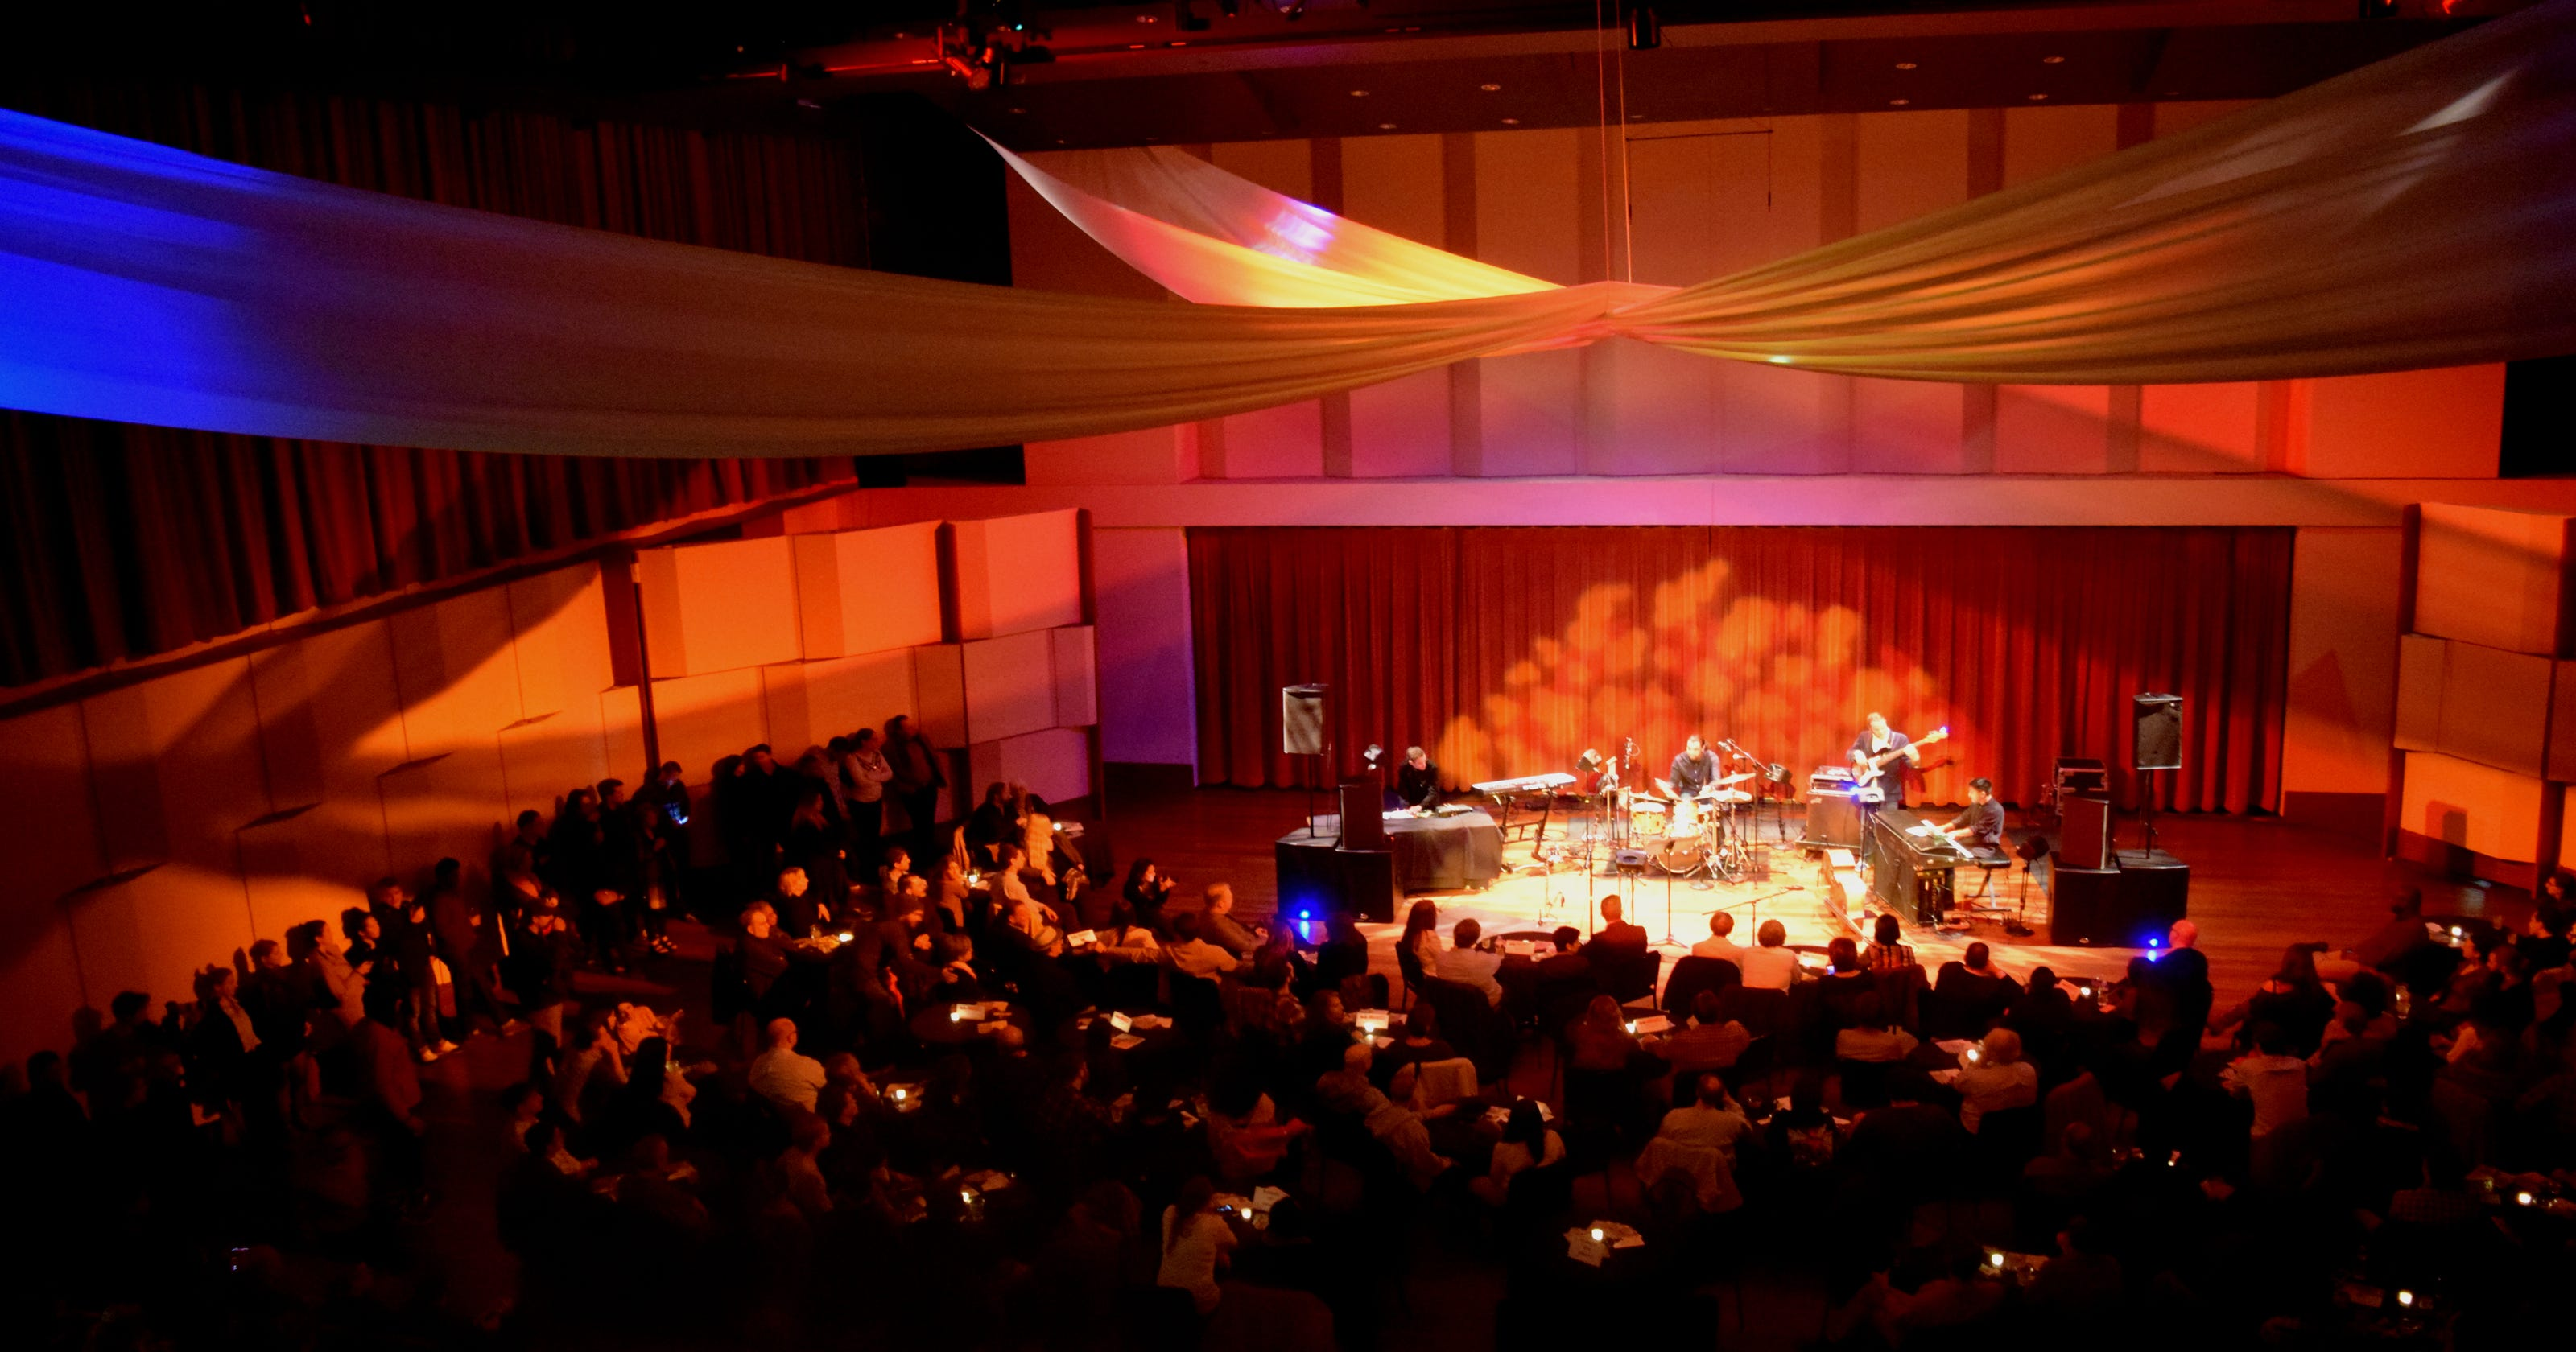 With 35 Million Gift Dso Reboots Recital Hall As The Cube